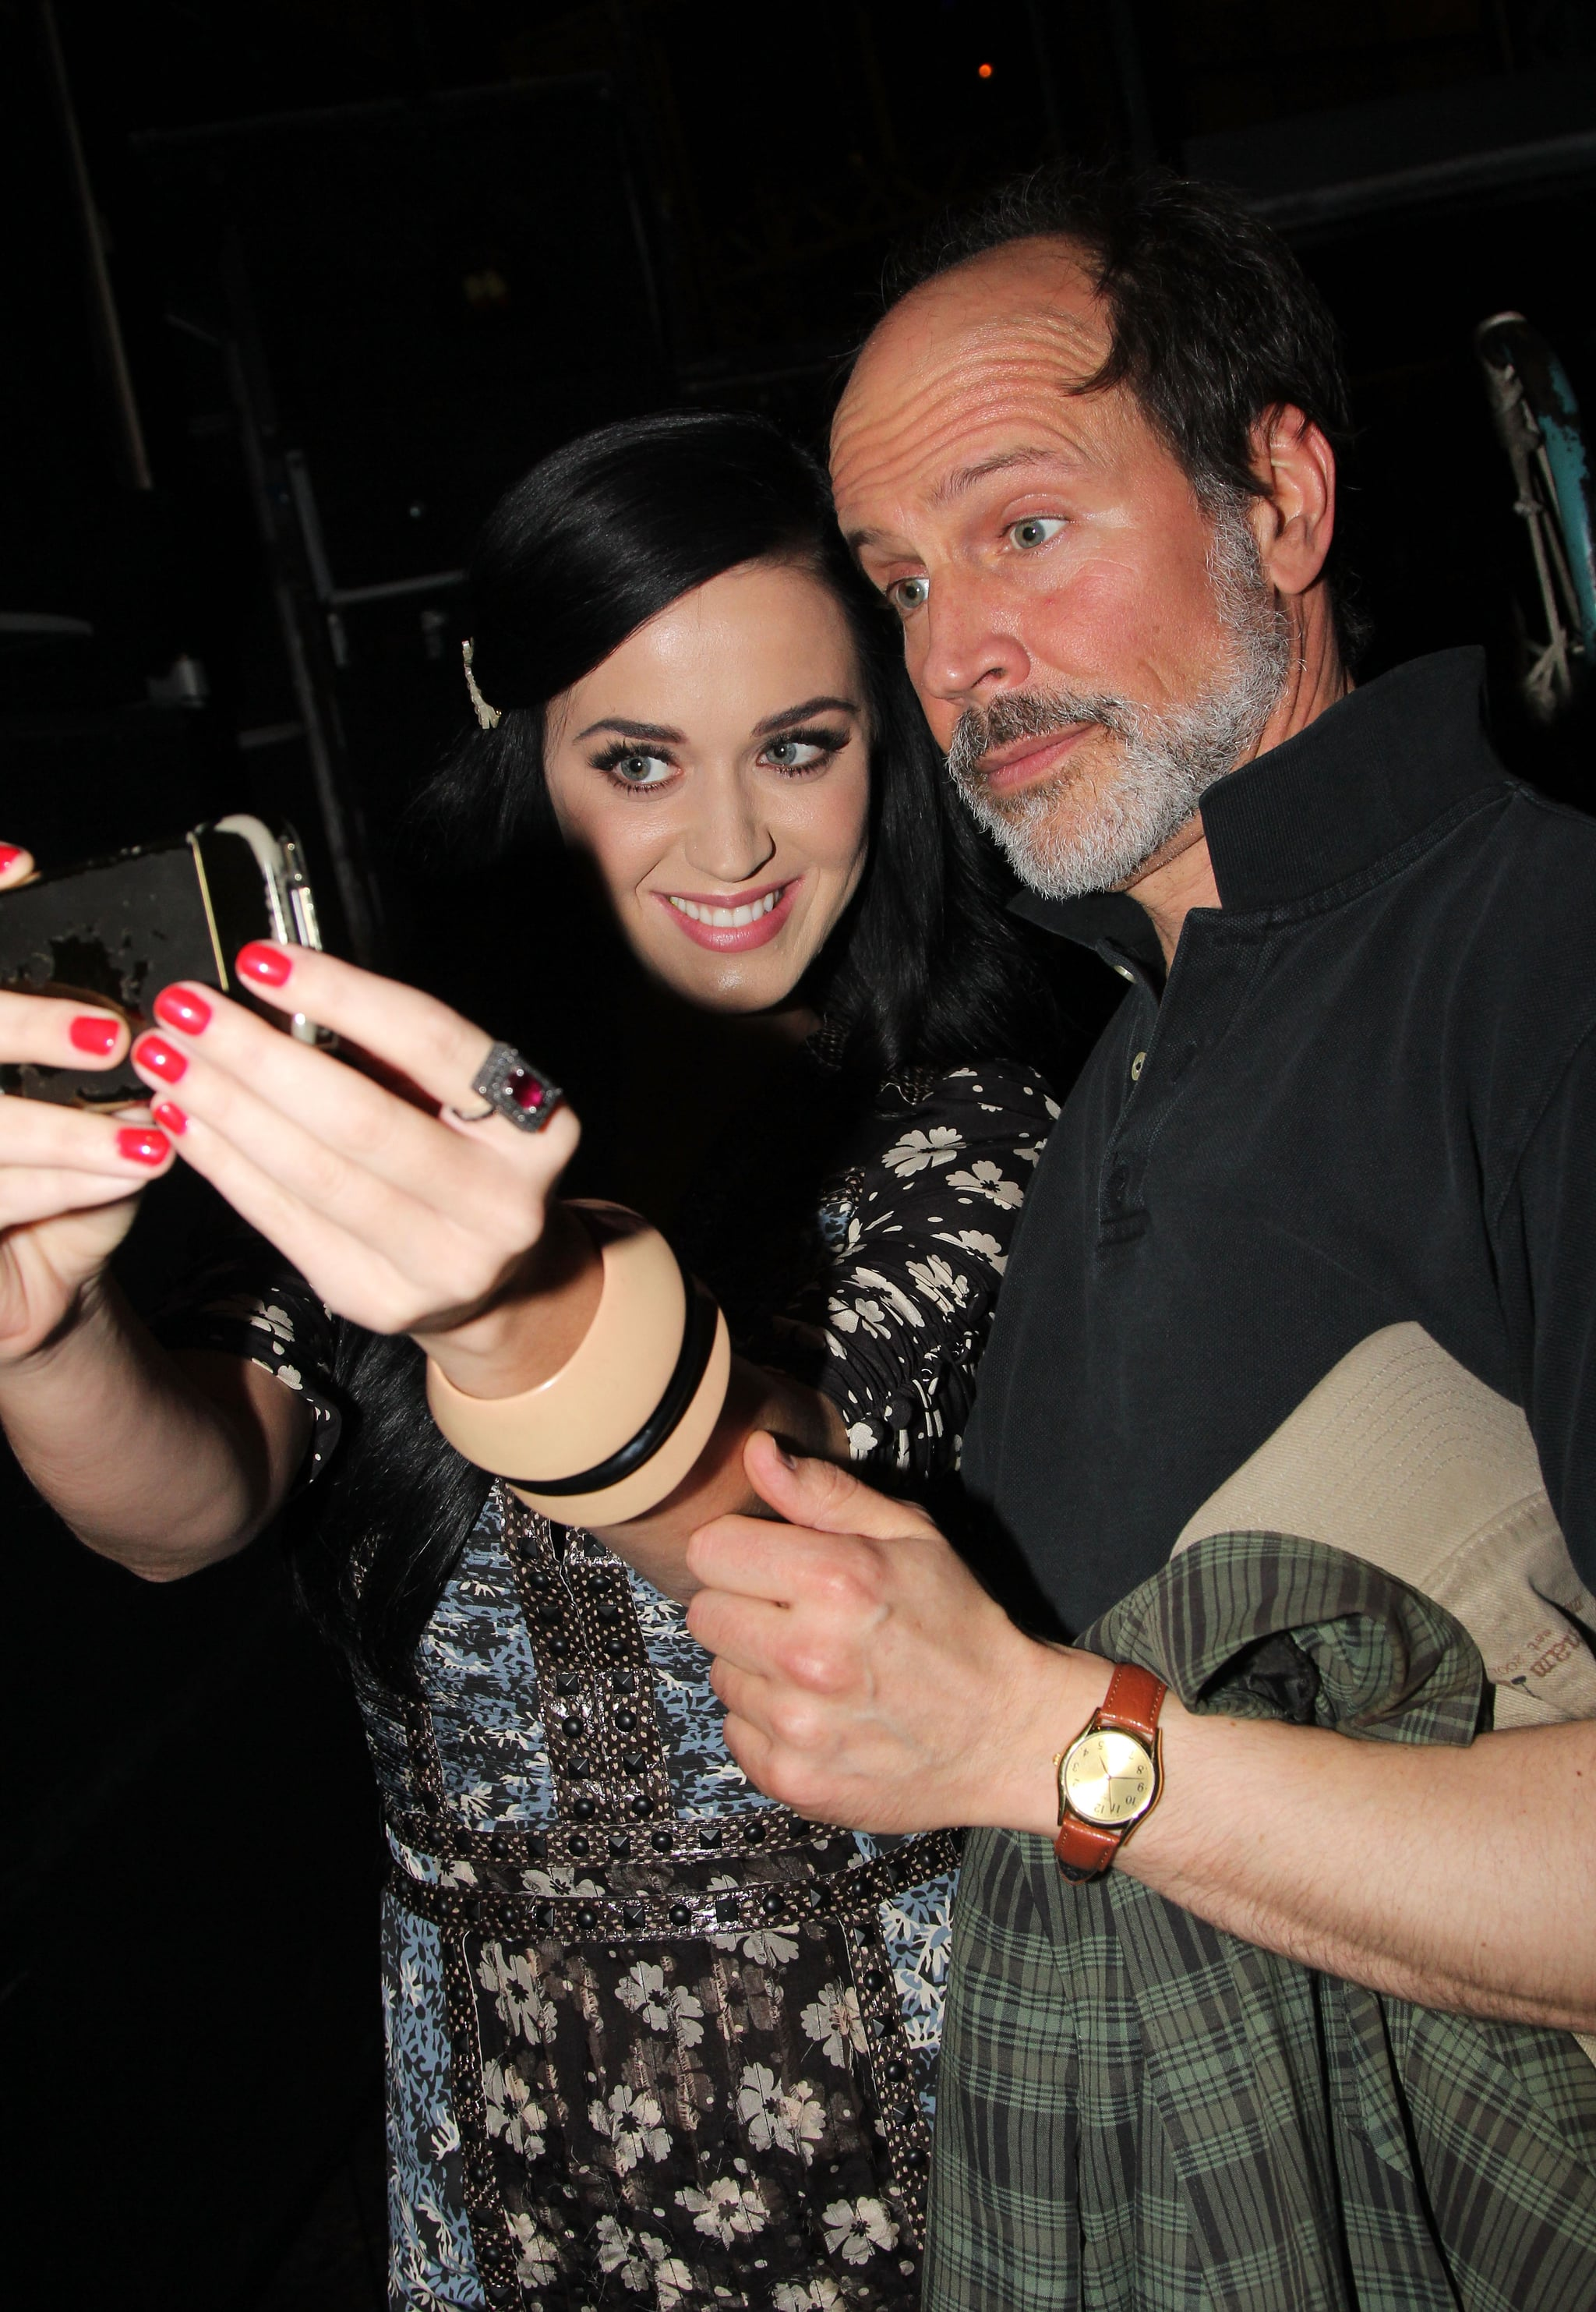 Katy Perry put on her best grin for a self-taken snap with Marcus Neville during a stop to see Kinky Boots on Broadway in May 2013.